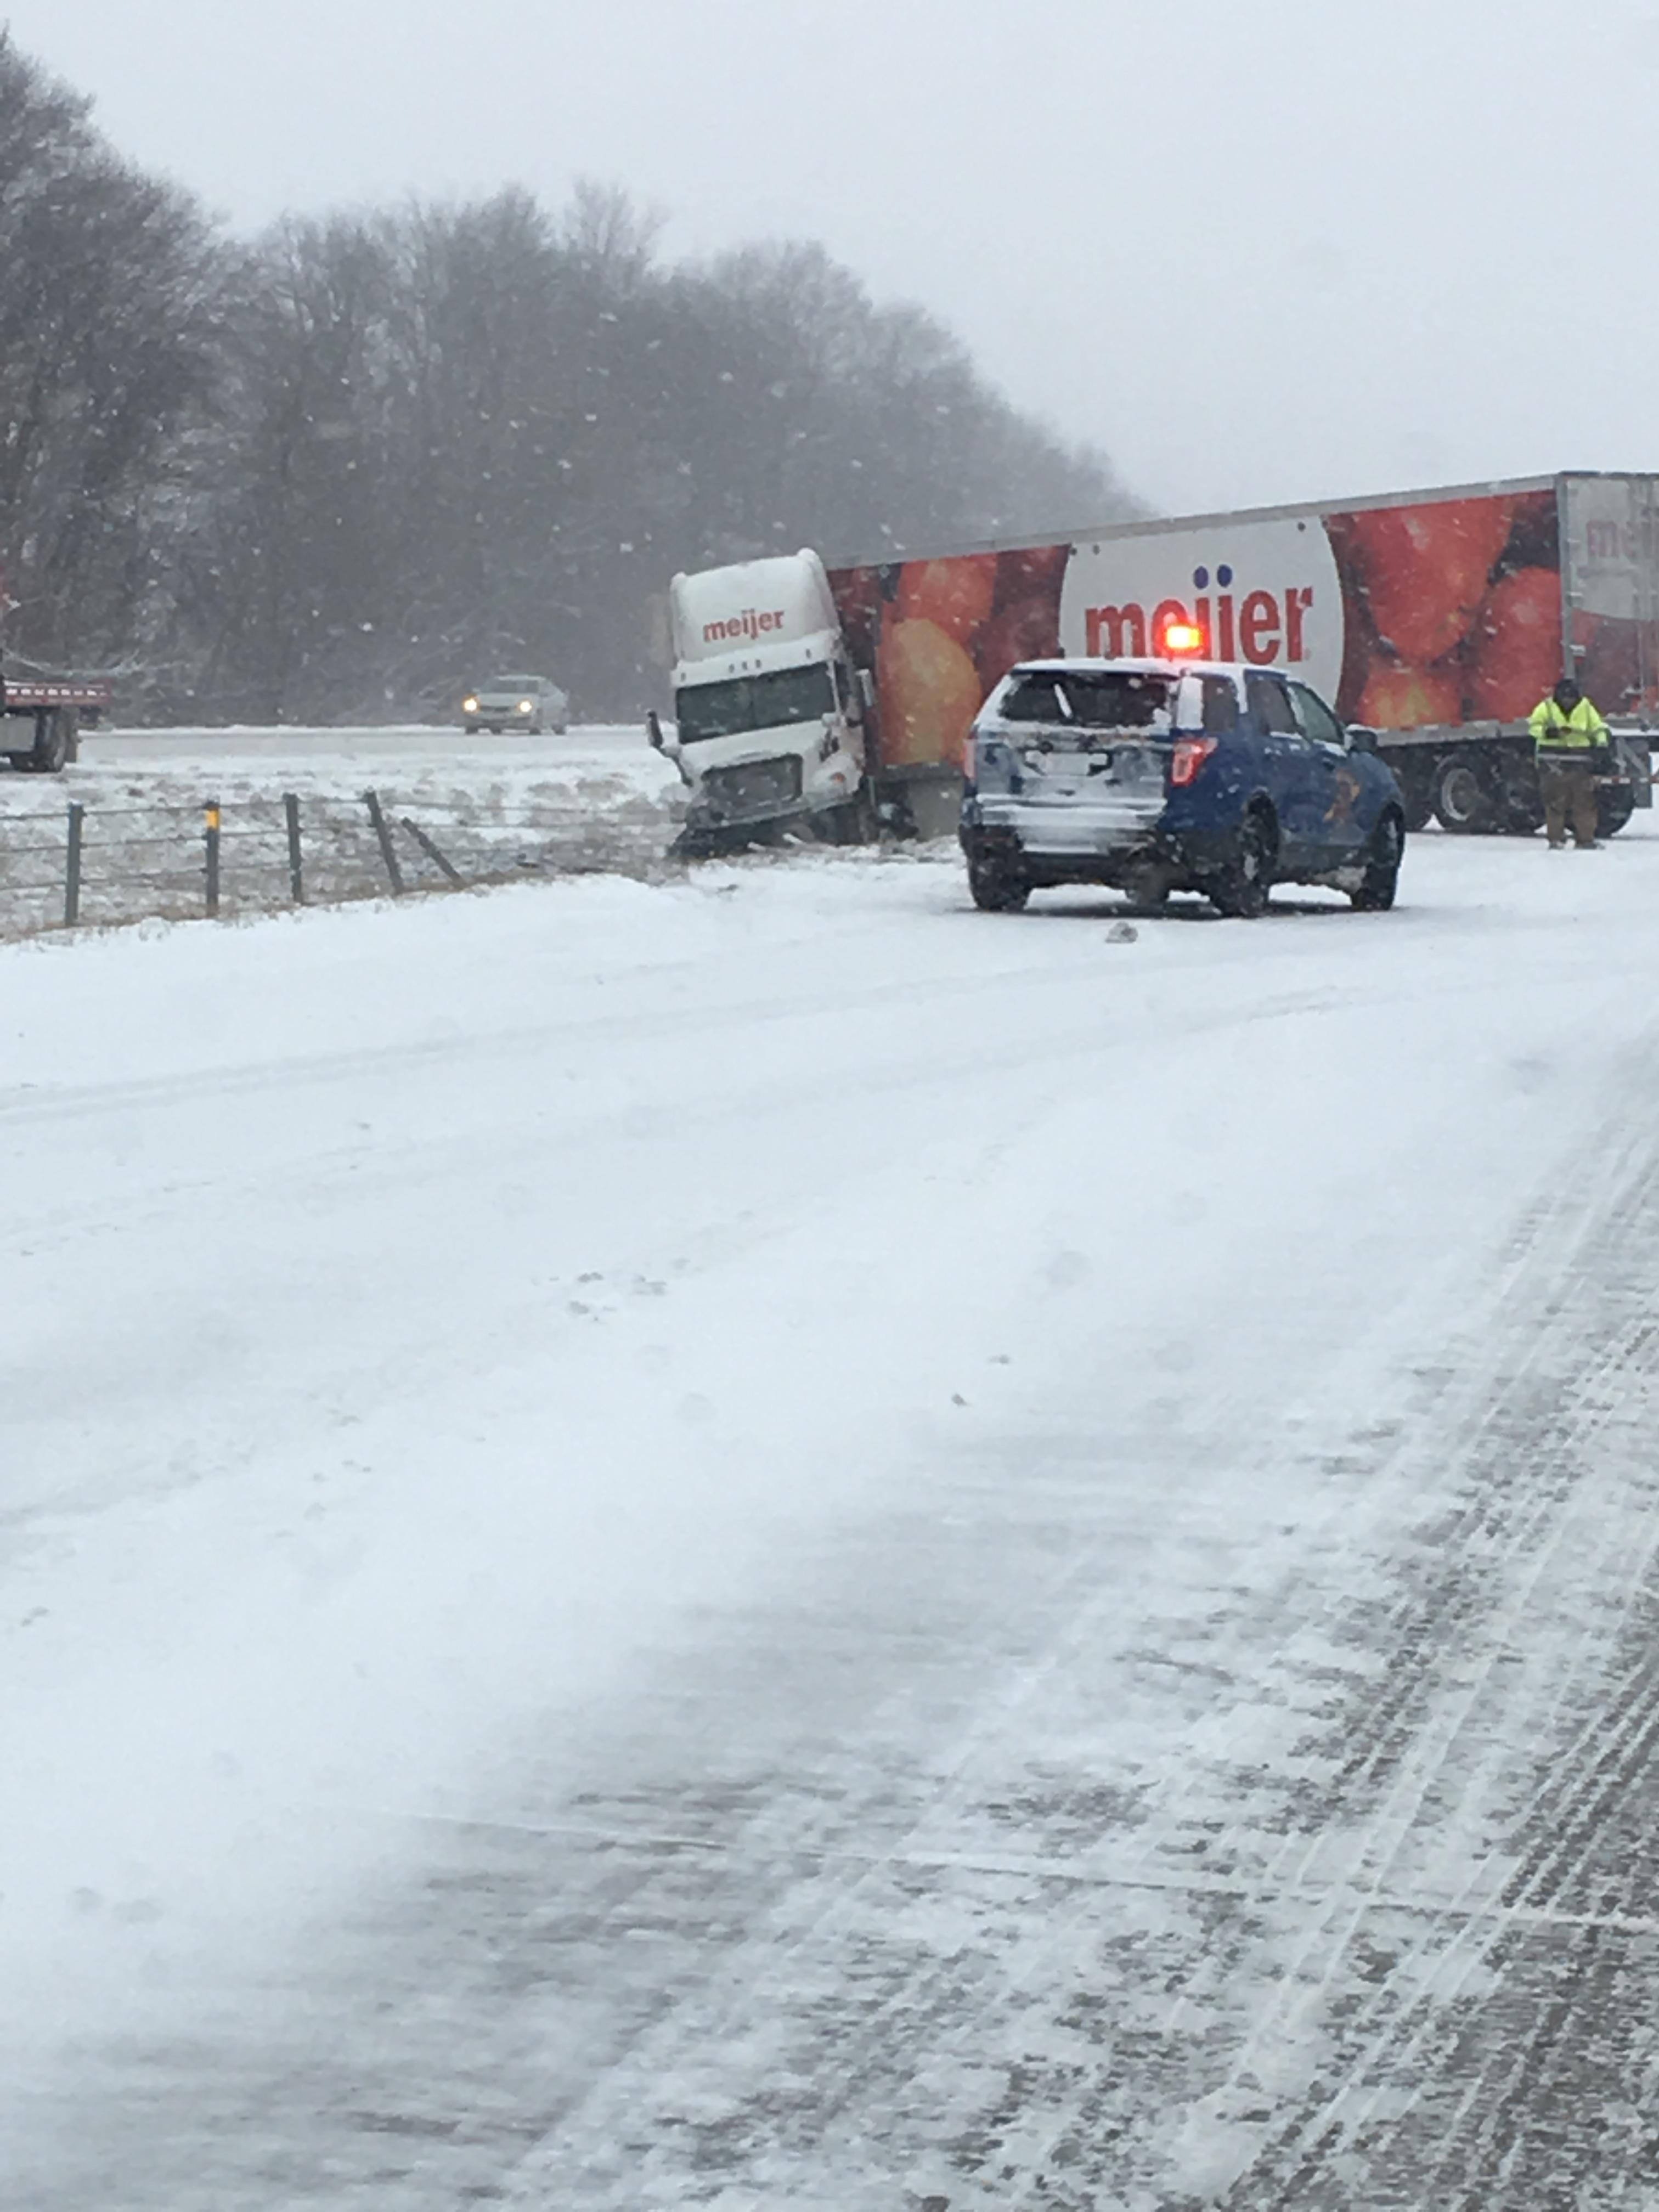 Several tractor-trailer trucks were involved in a crash in eastbound Interstate 96 on Friday, Jan. 12, 2018. (Contributed/Traci Holt)